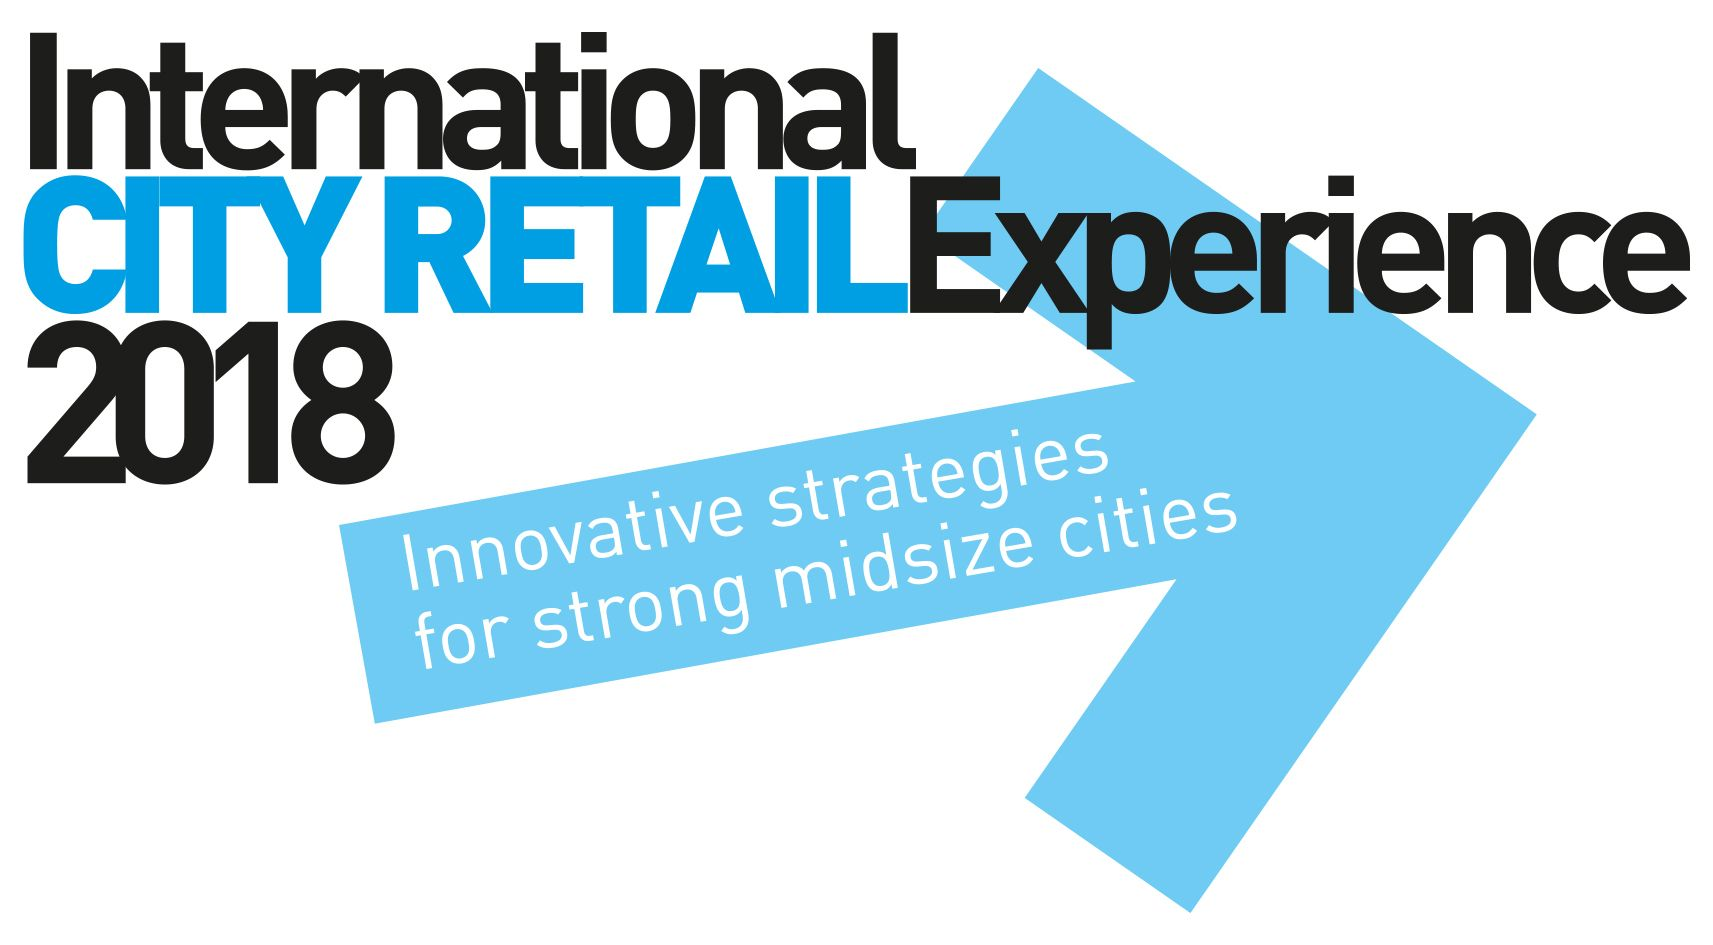 International CityRetail Experience2018 logo